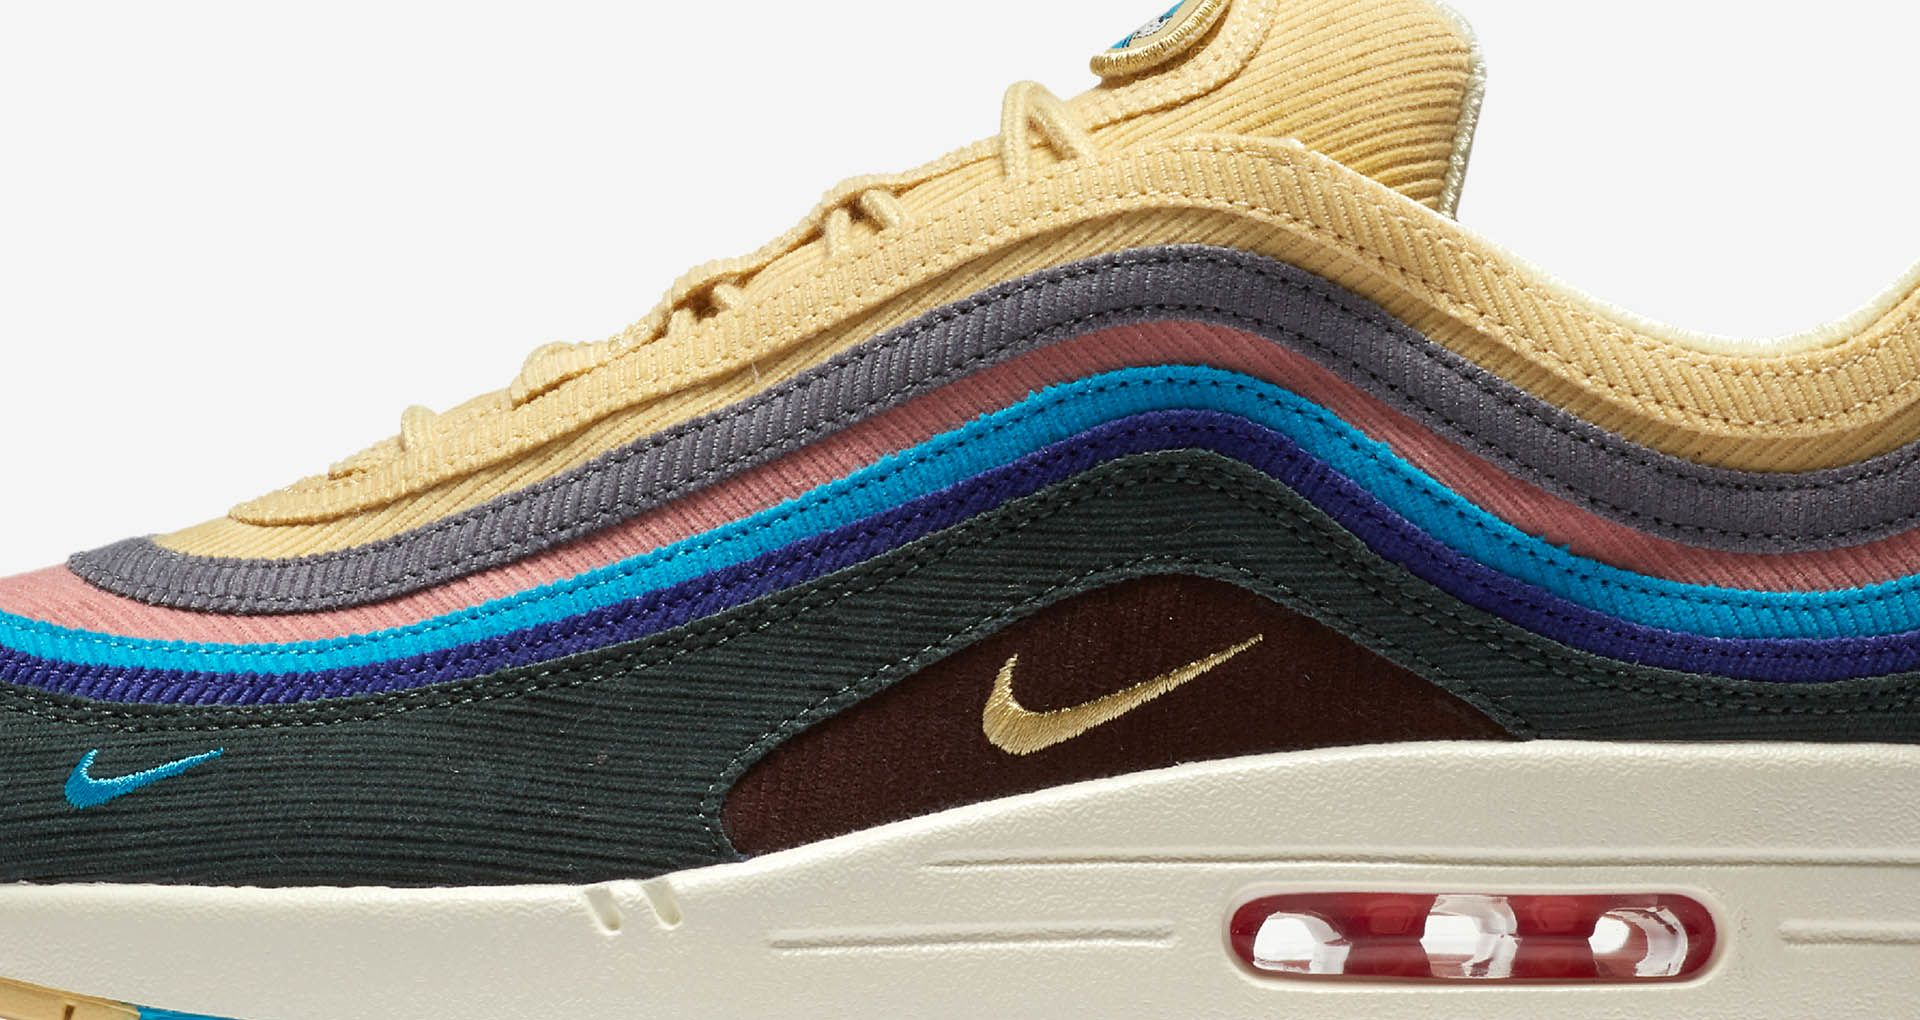 timeless design 0bdee 2fba7 Nike Air Max 1/97 'Sean Wotherspoon' Release Date. Nike⁠+ SNKRS